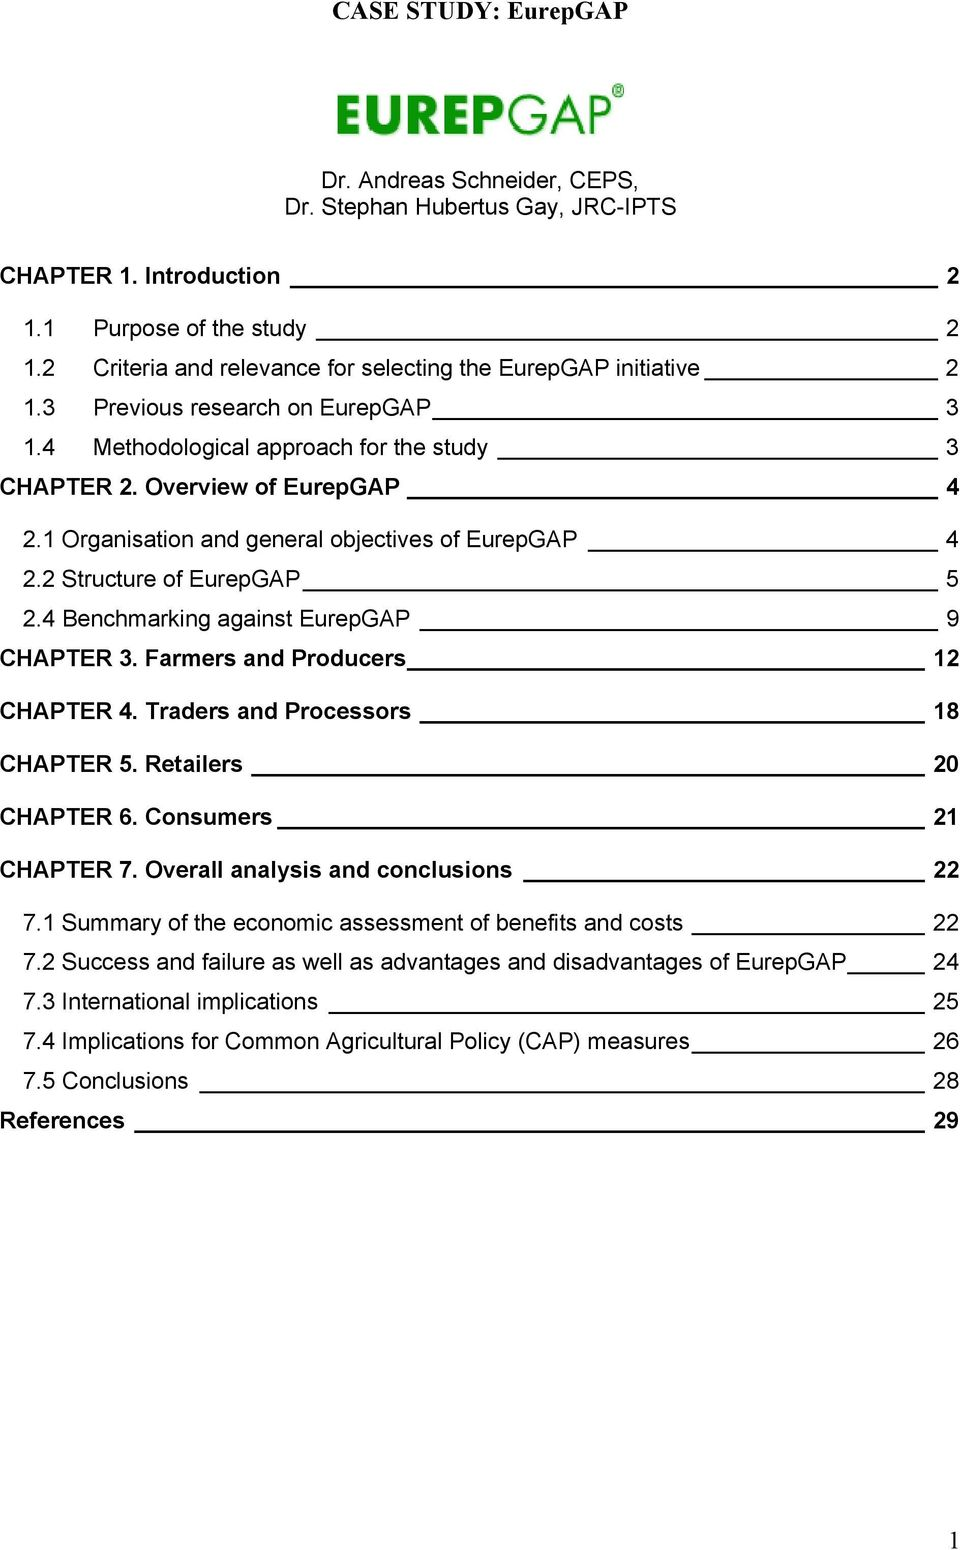 1 Organisation and general objectives of EurepGAP 4 2.2 Structure of EurepGAP 5 2.4 Benchmarking against EurepGAP 9 CHAPTER 3. Farmers and Producers 12 CHAPTER 4. Traders and Processors 18 CHAPTER 5.